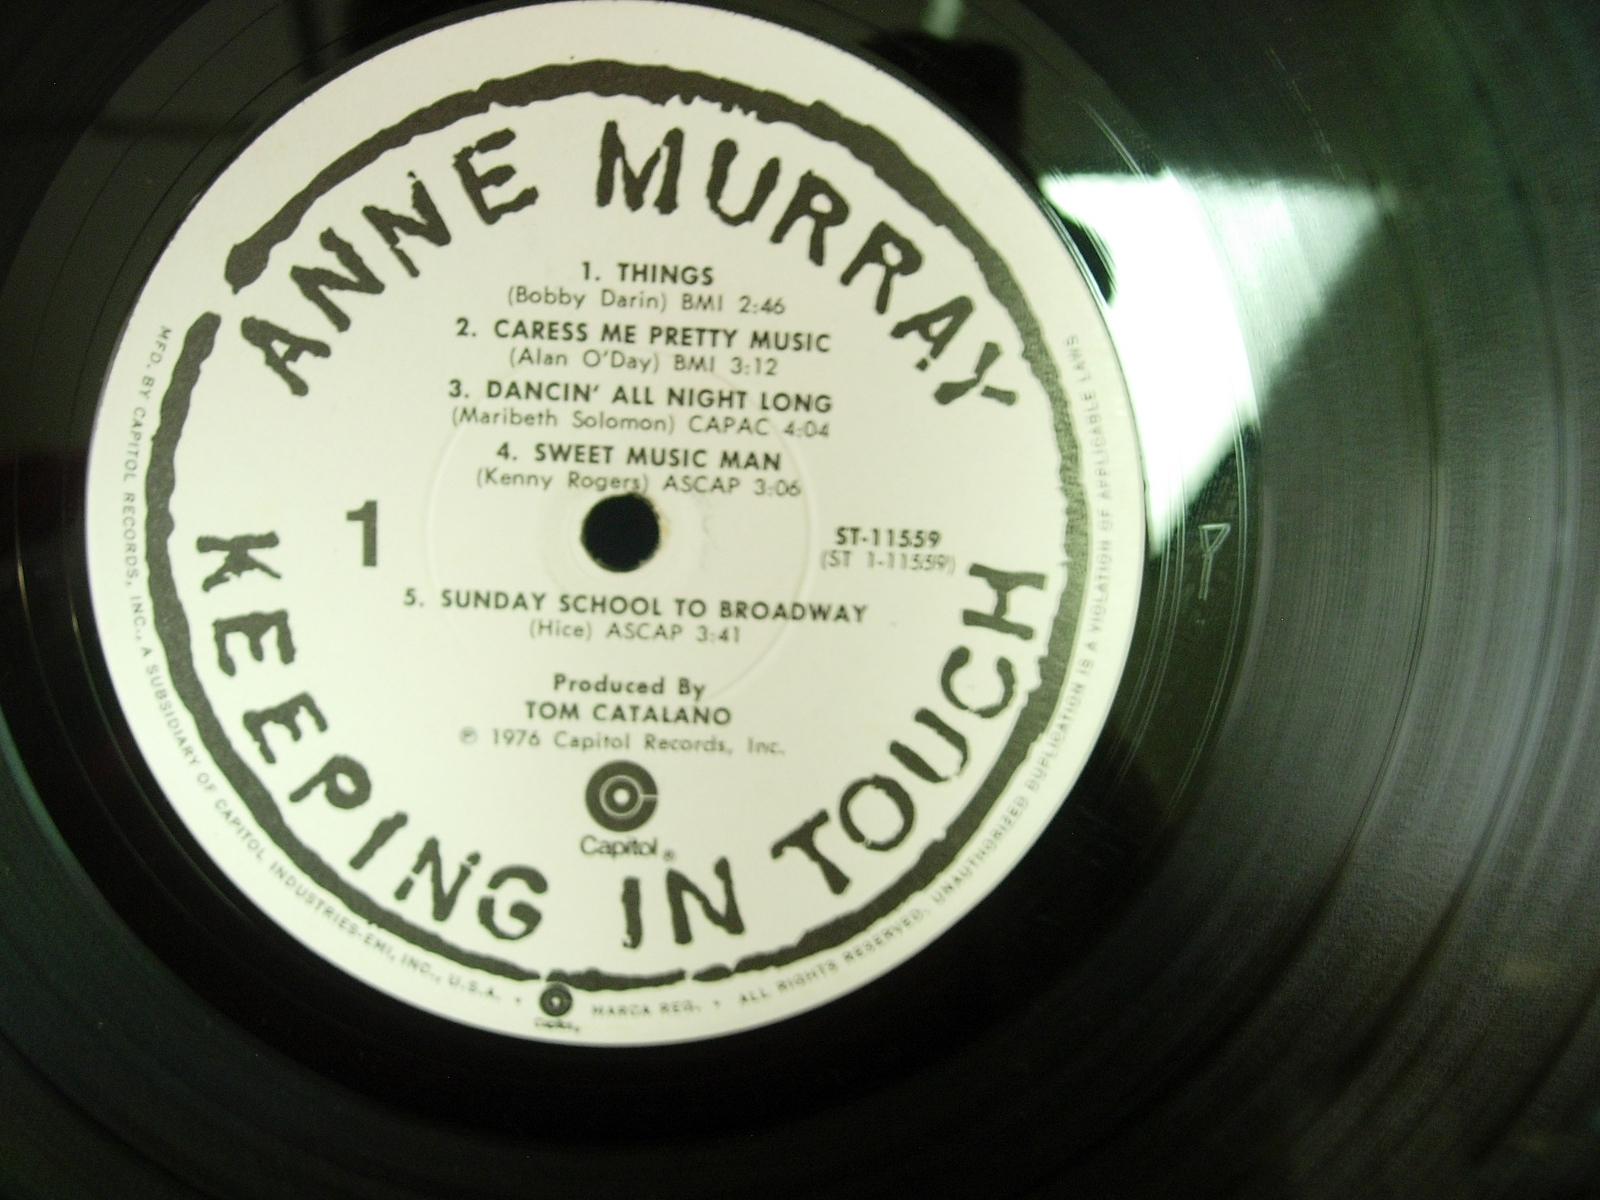 Anne Murray - Keeping In Touch - Capitol Records ST-11559